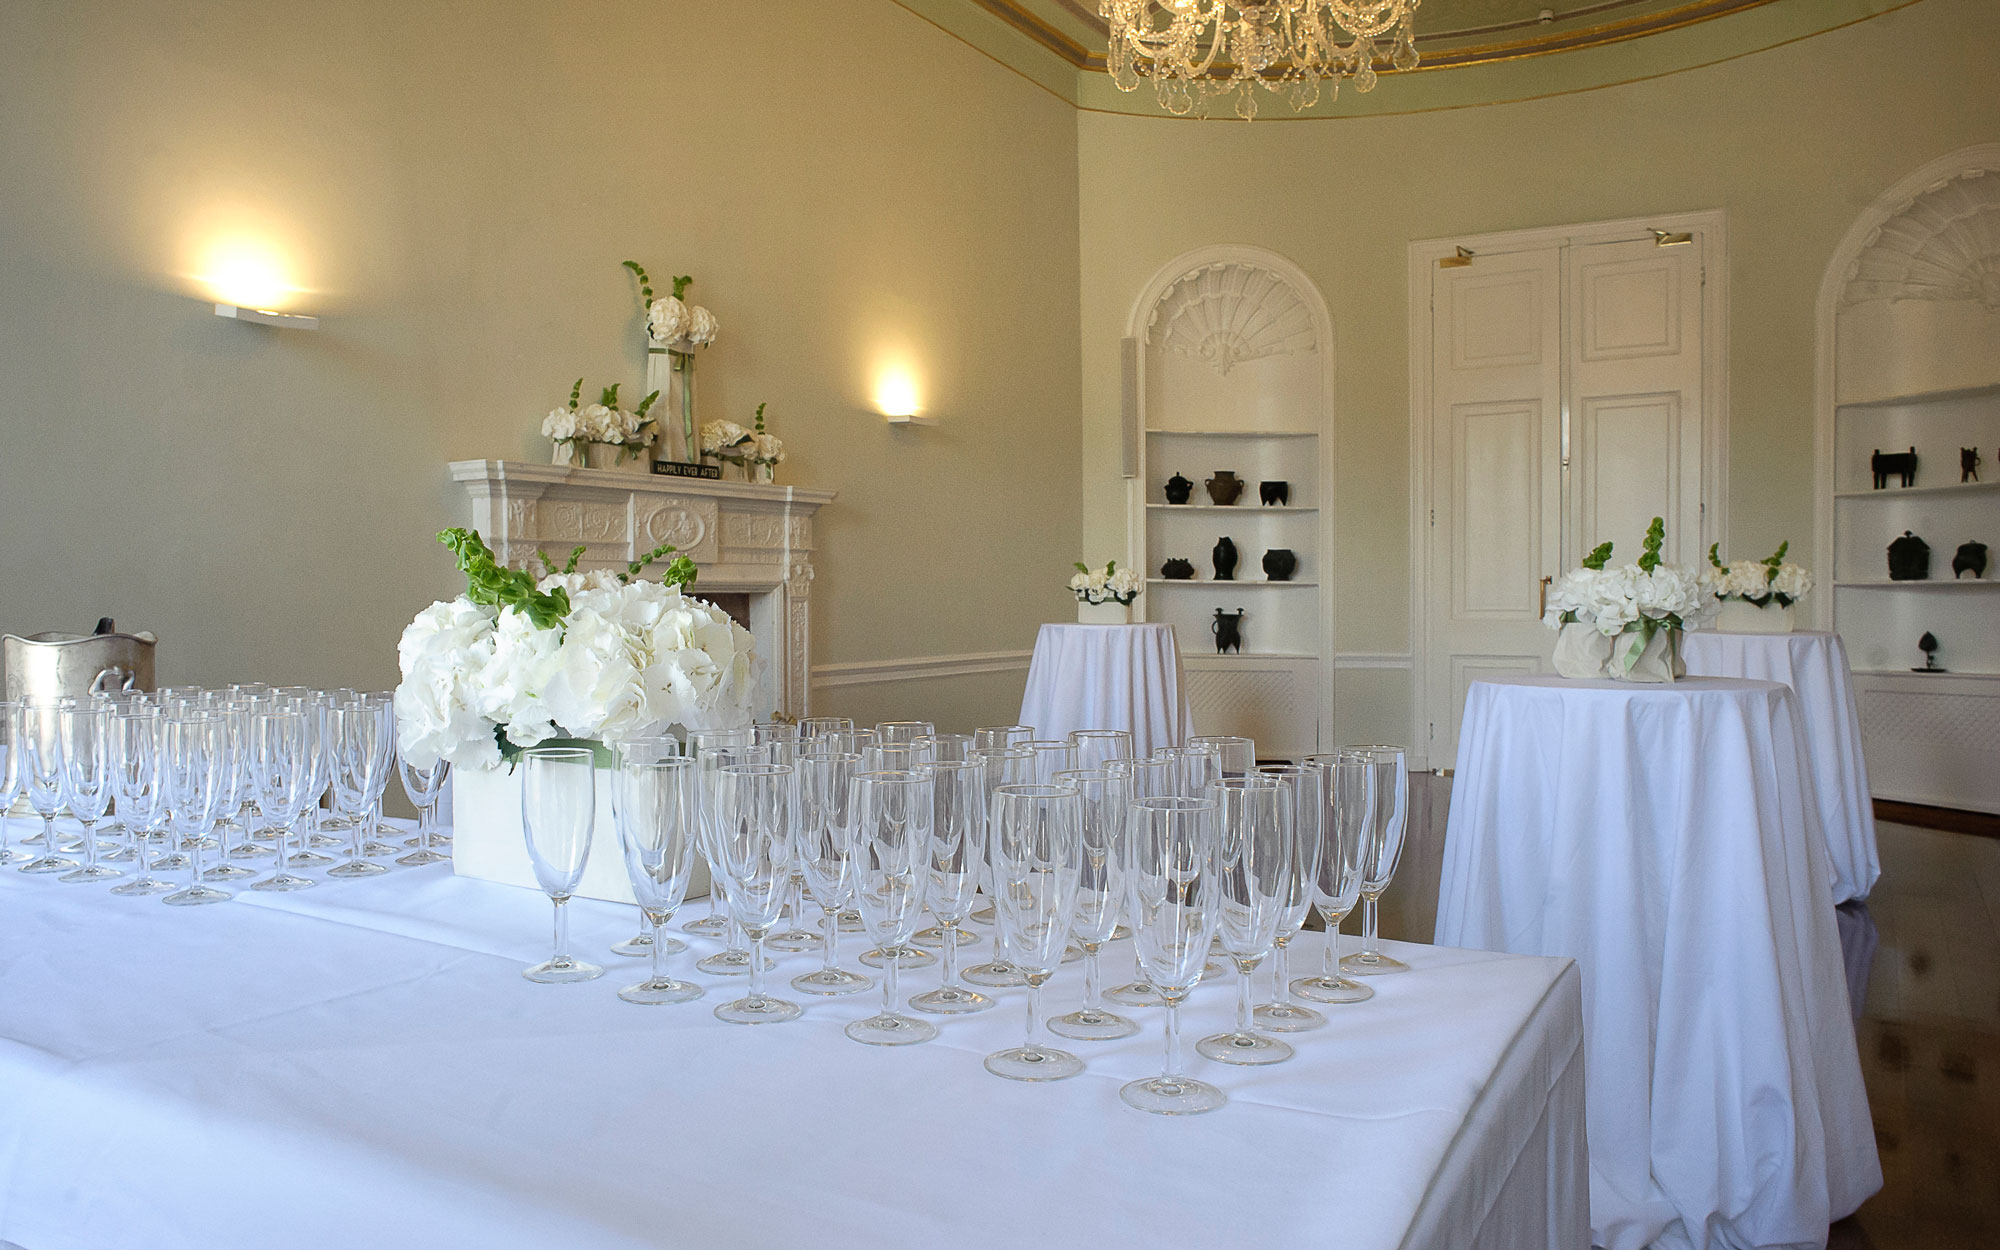 Asia House fine room events drinks reception dinner private hire